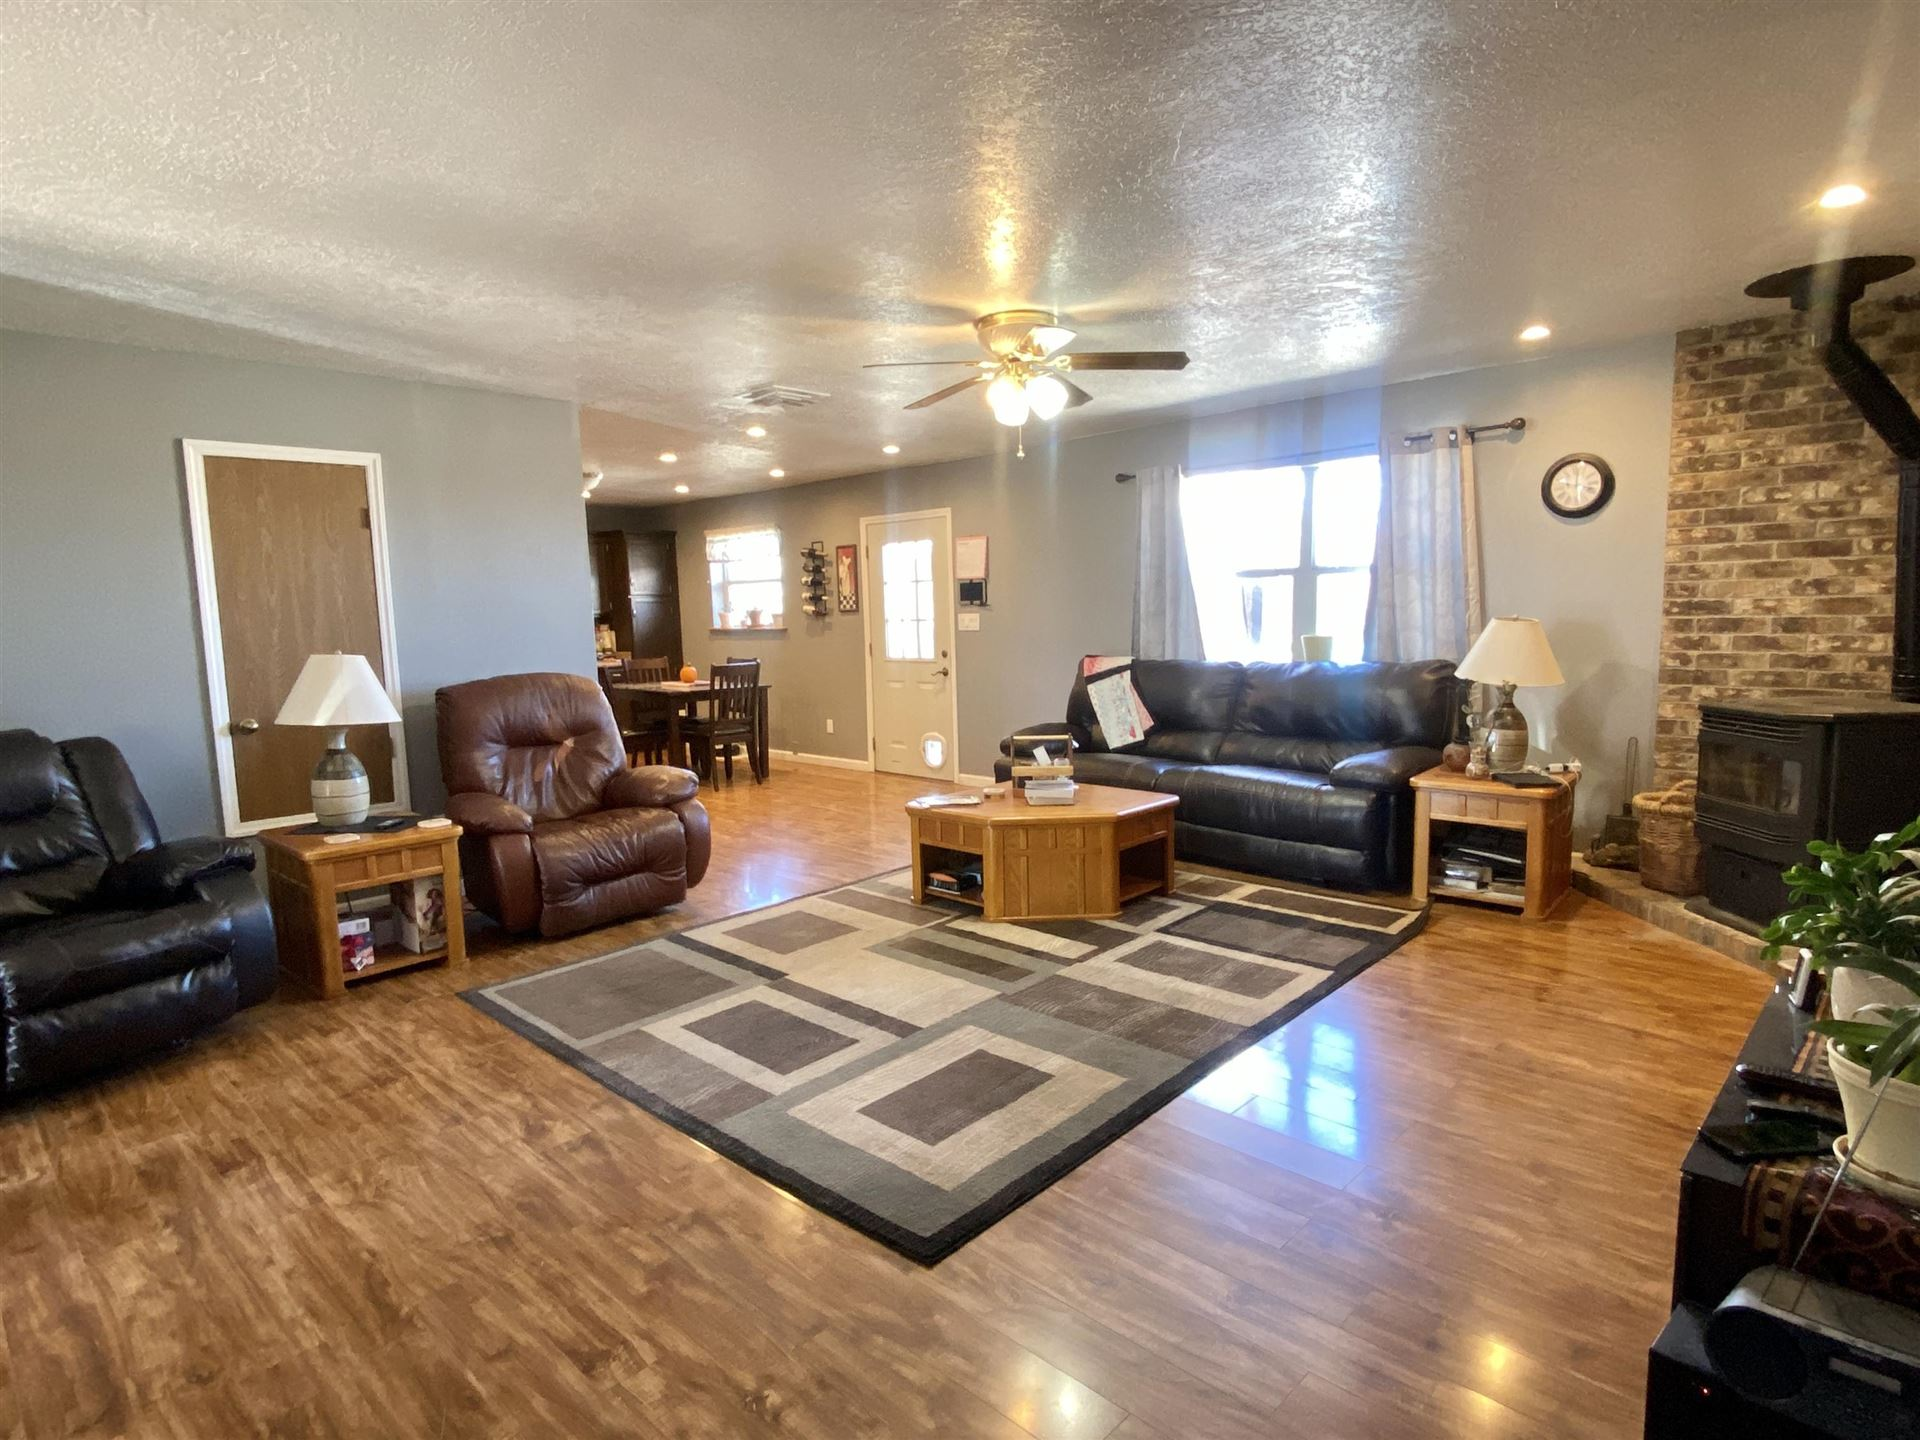 Photo of 611 NORTHERN Boulevard NW, Rio Rancho, NM 87124 (MLS # 978155)